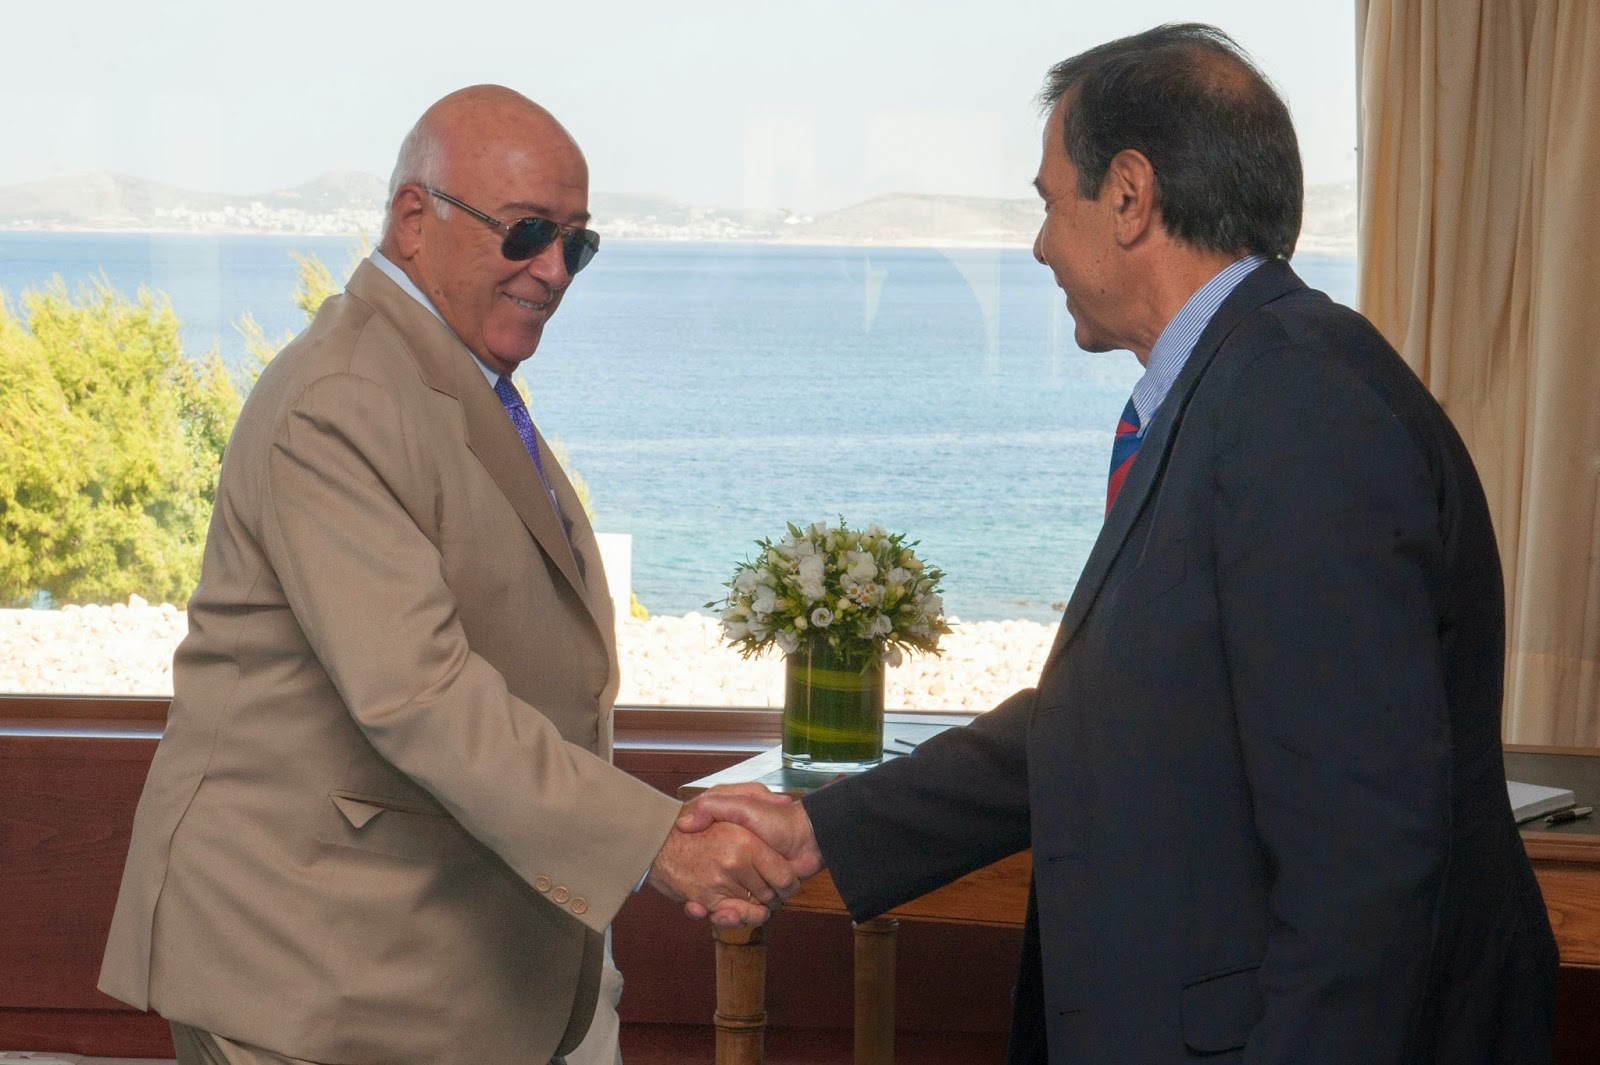 marinetimes the 17th annual meeting of the hellenic and